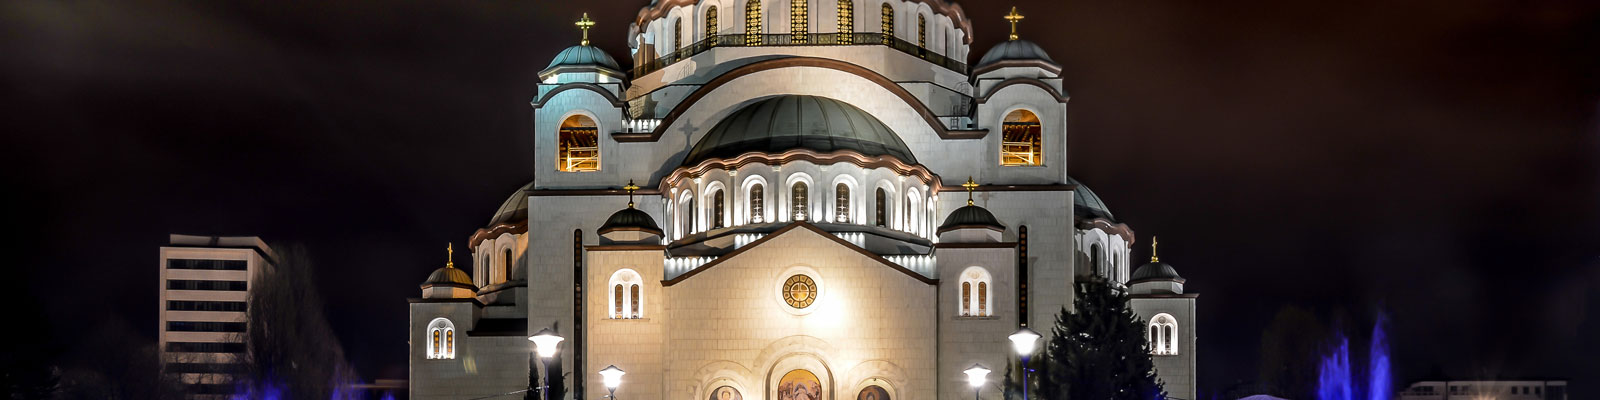 Serbia Vegan Travel Guide - Church of Saint Sava